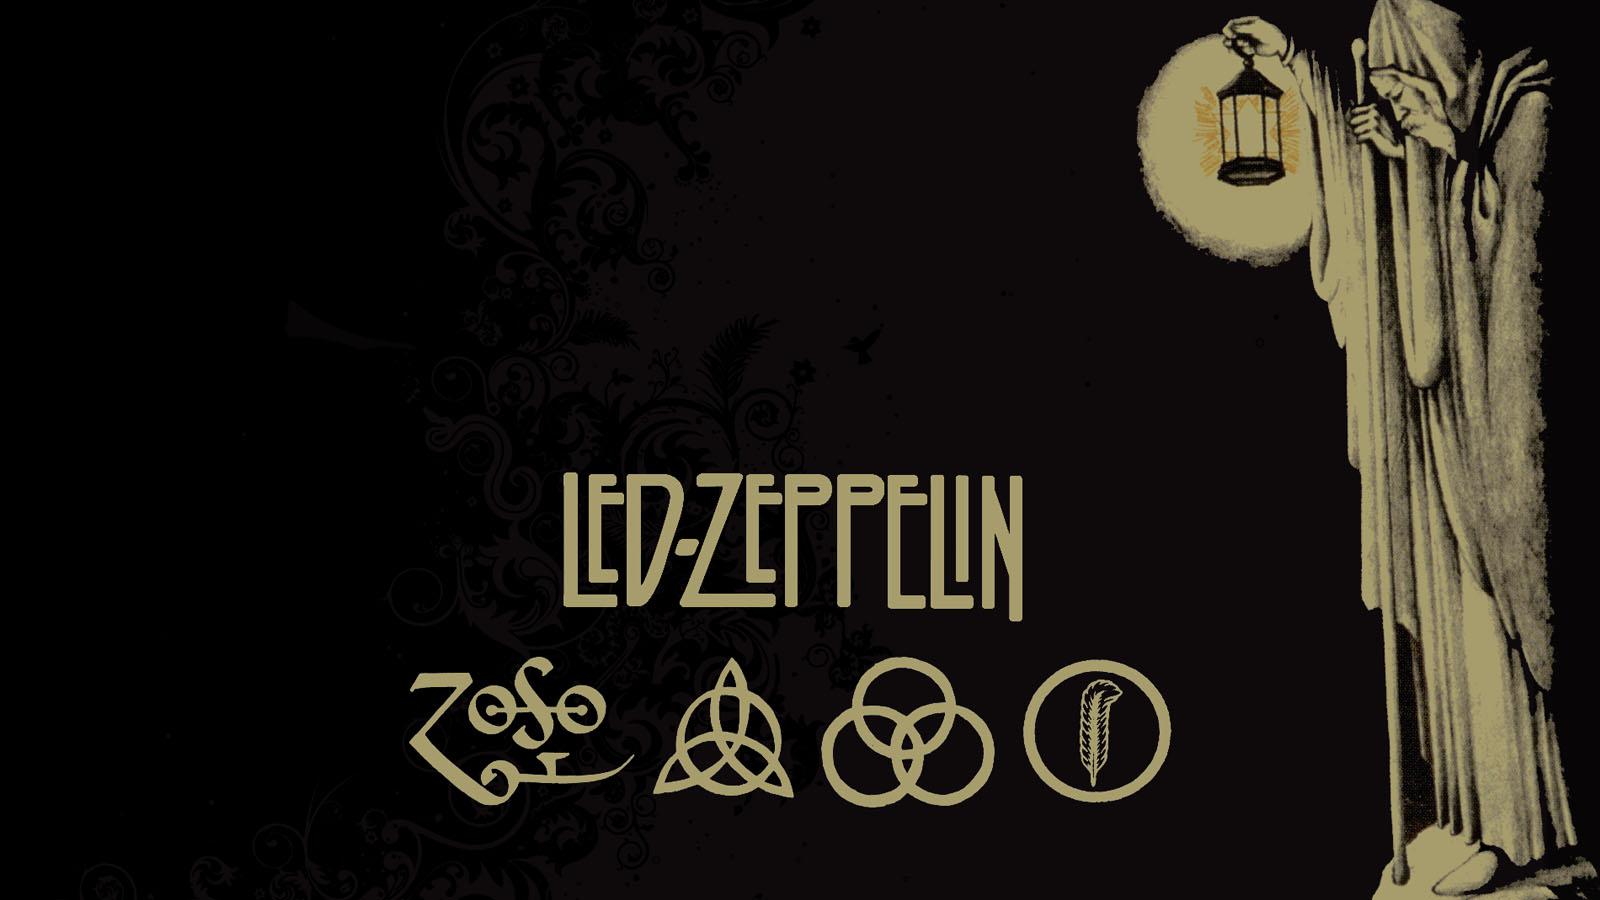 Led Zeppelin Stairway by HarveyMcKenna on DeviantArt